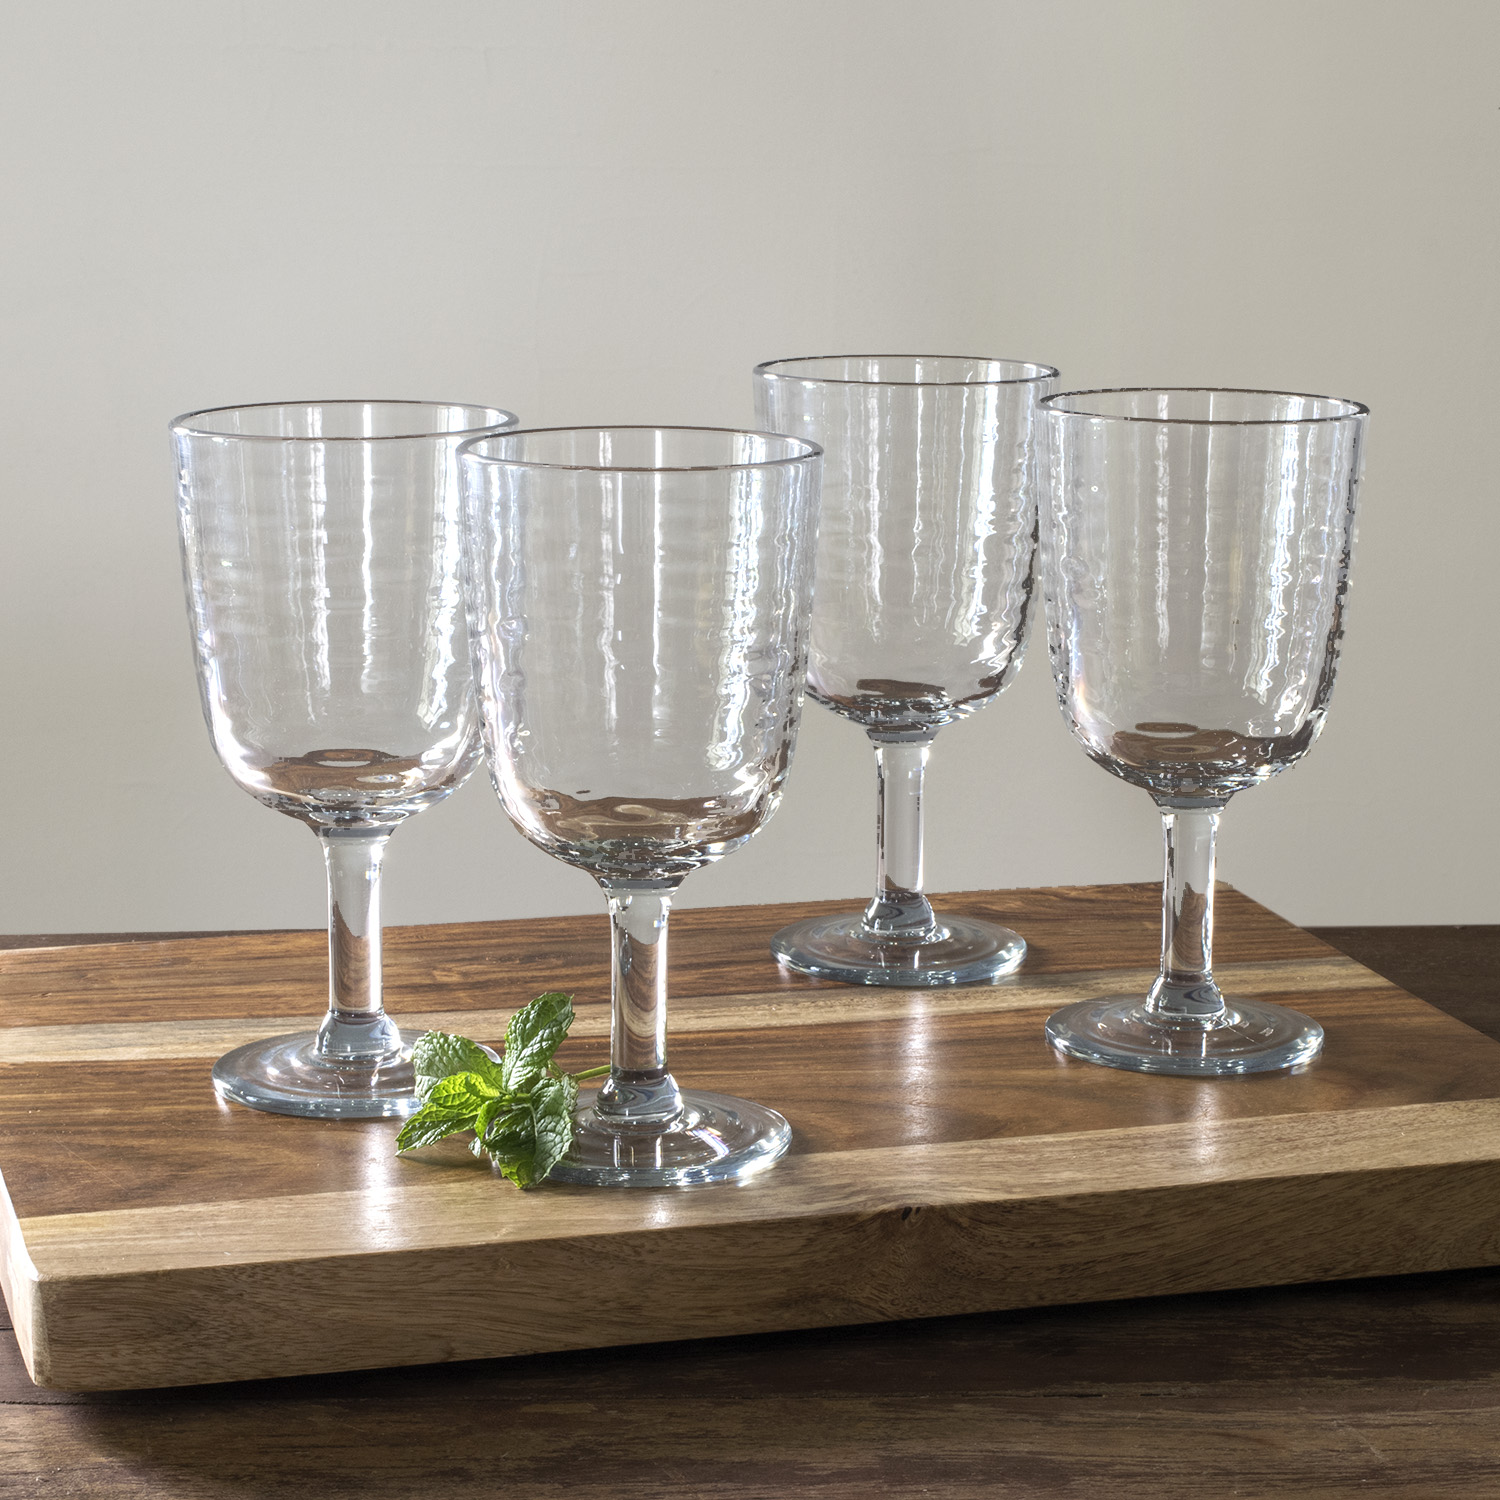 Mainstays Green Tint Goblet, 4 Pack